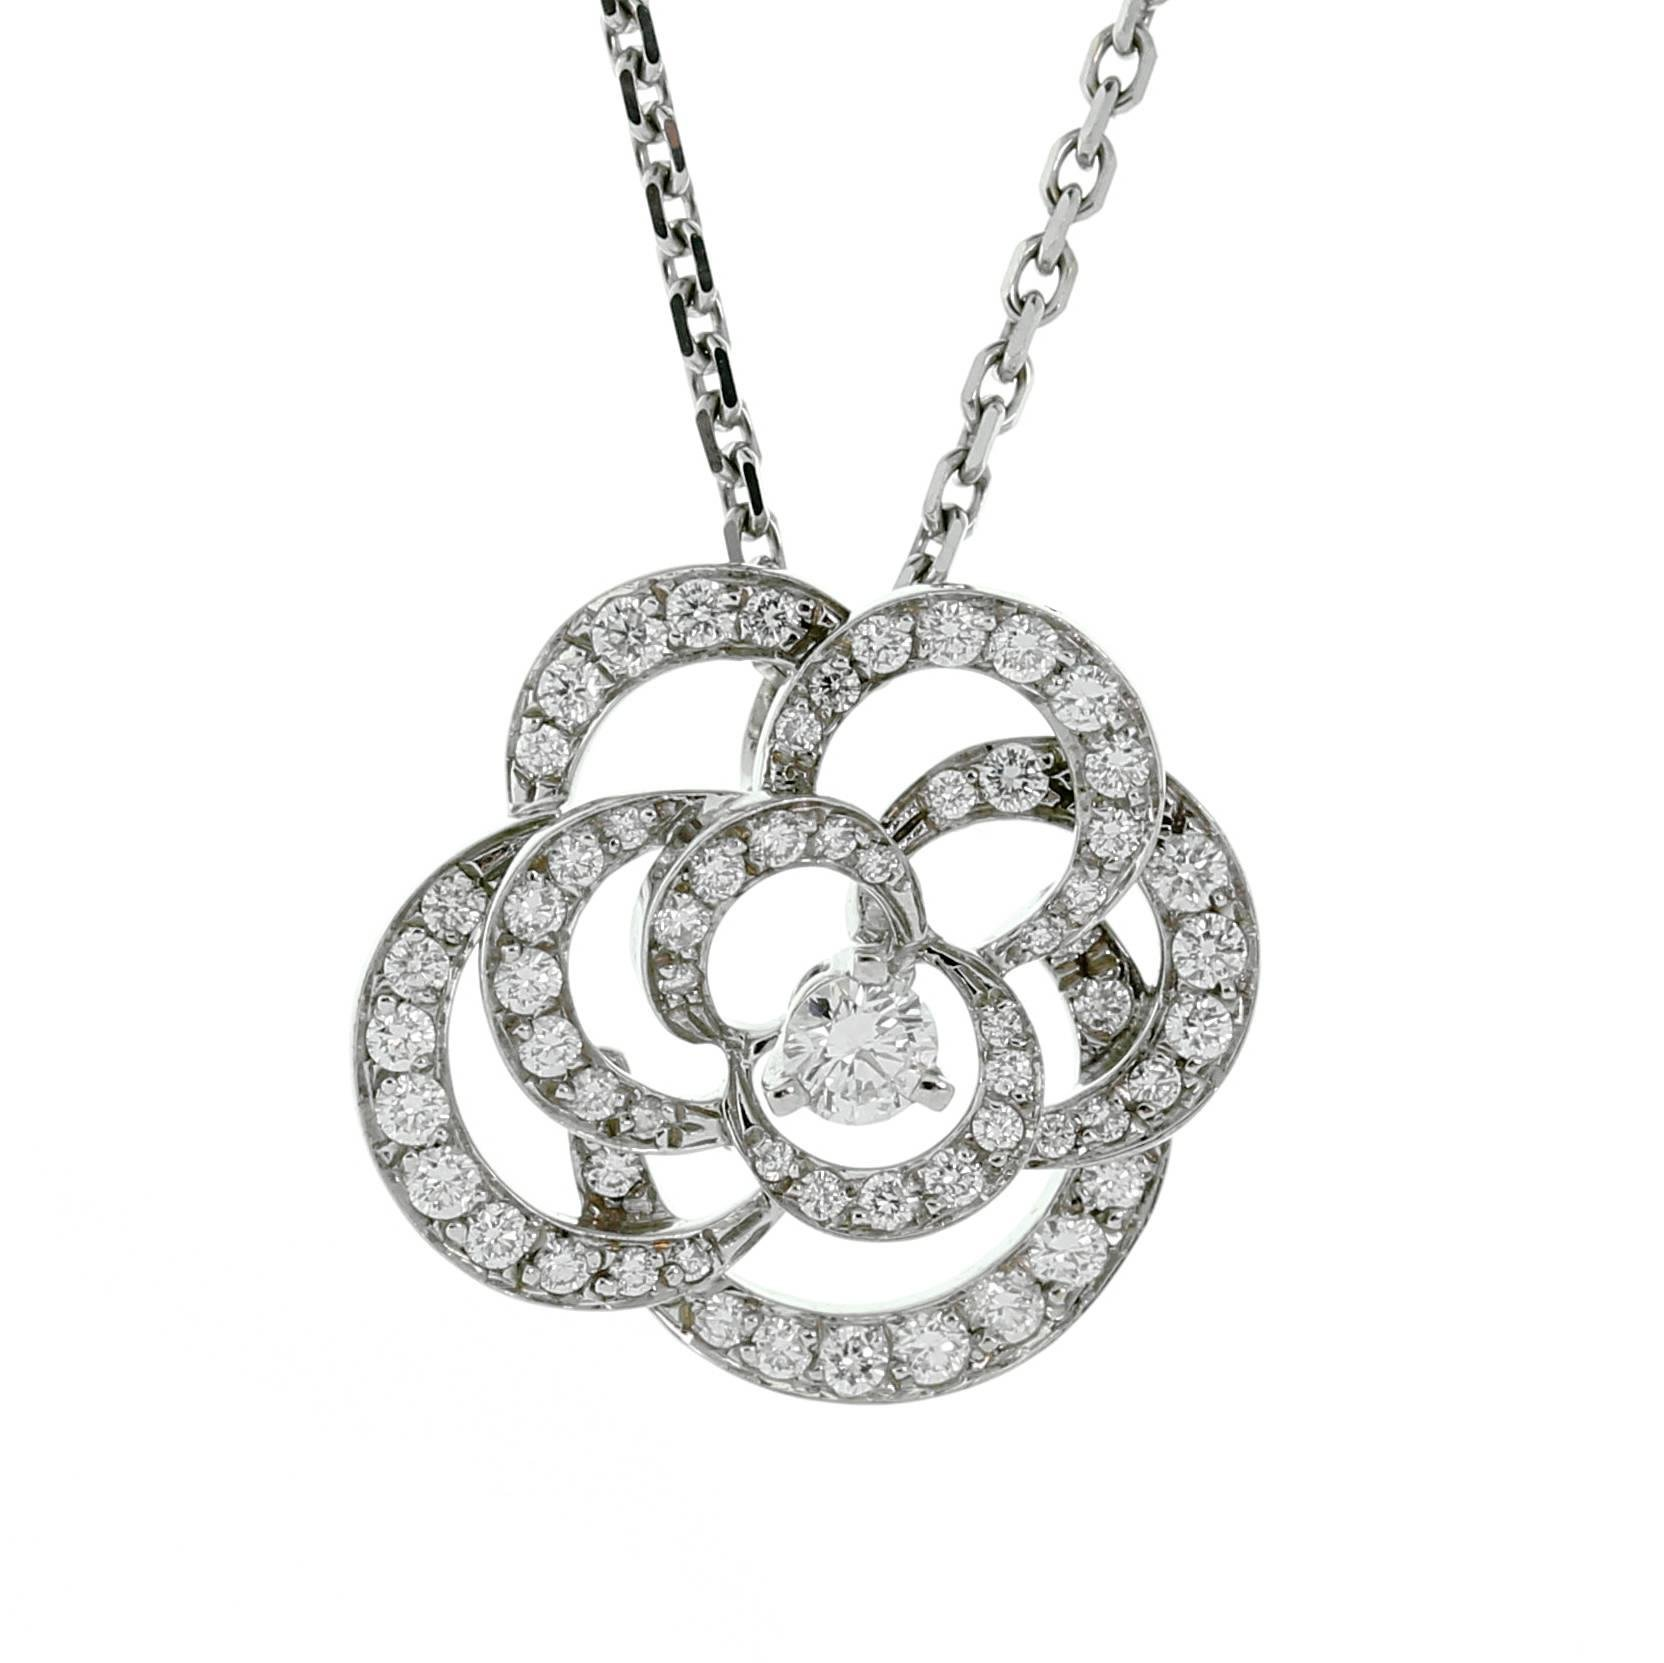 1664x1663 Chanel Camellia Flower Diamond Necklace For Sale